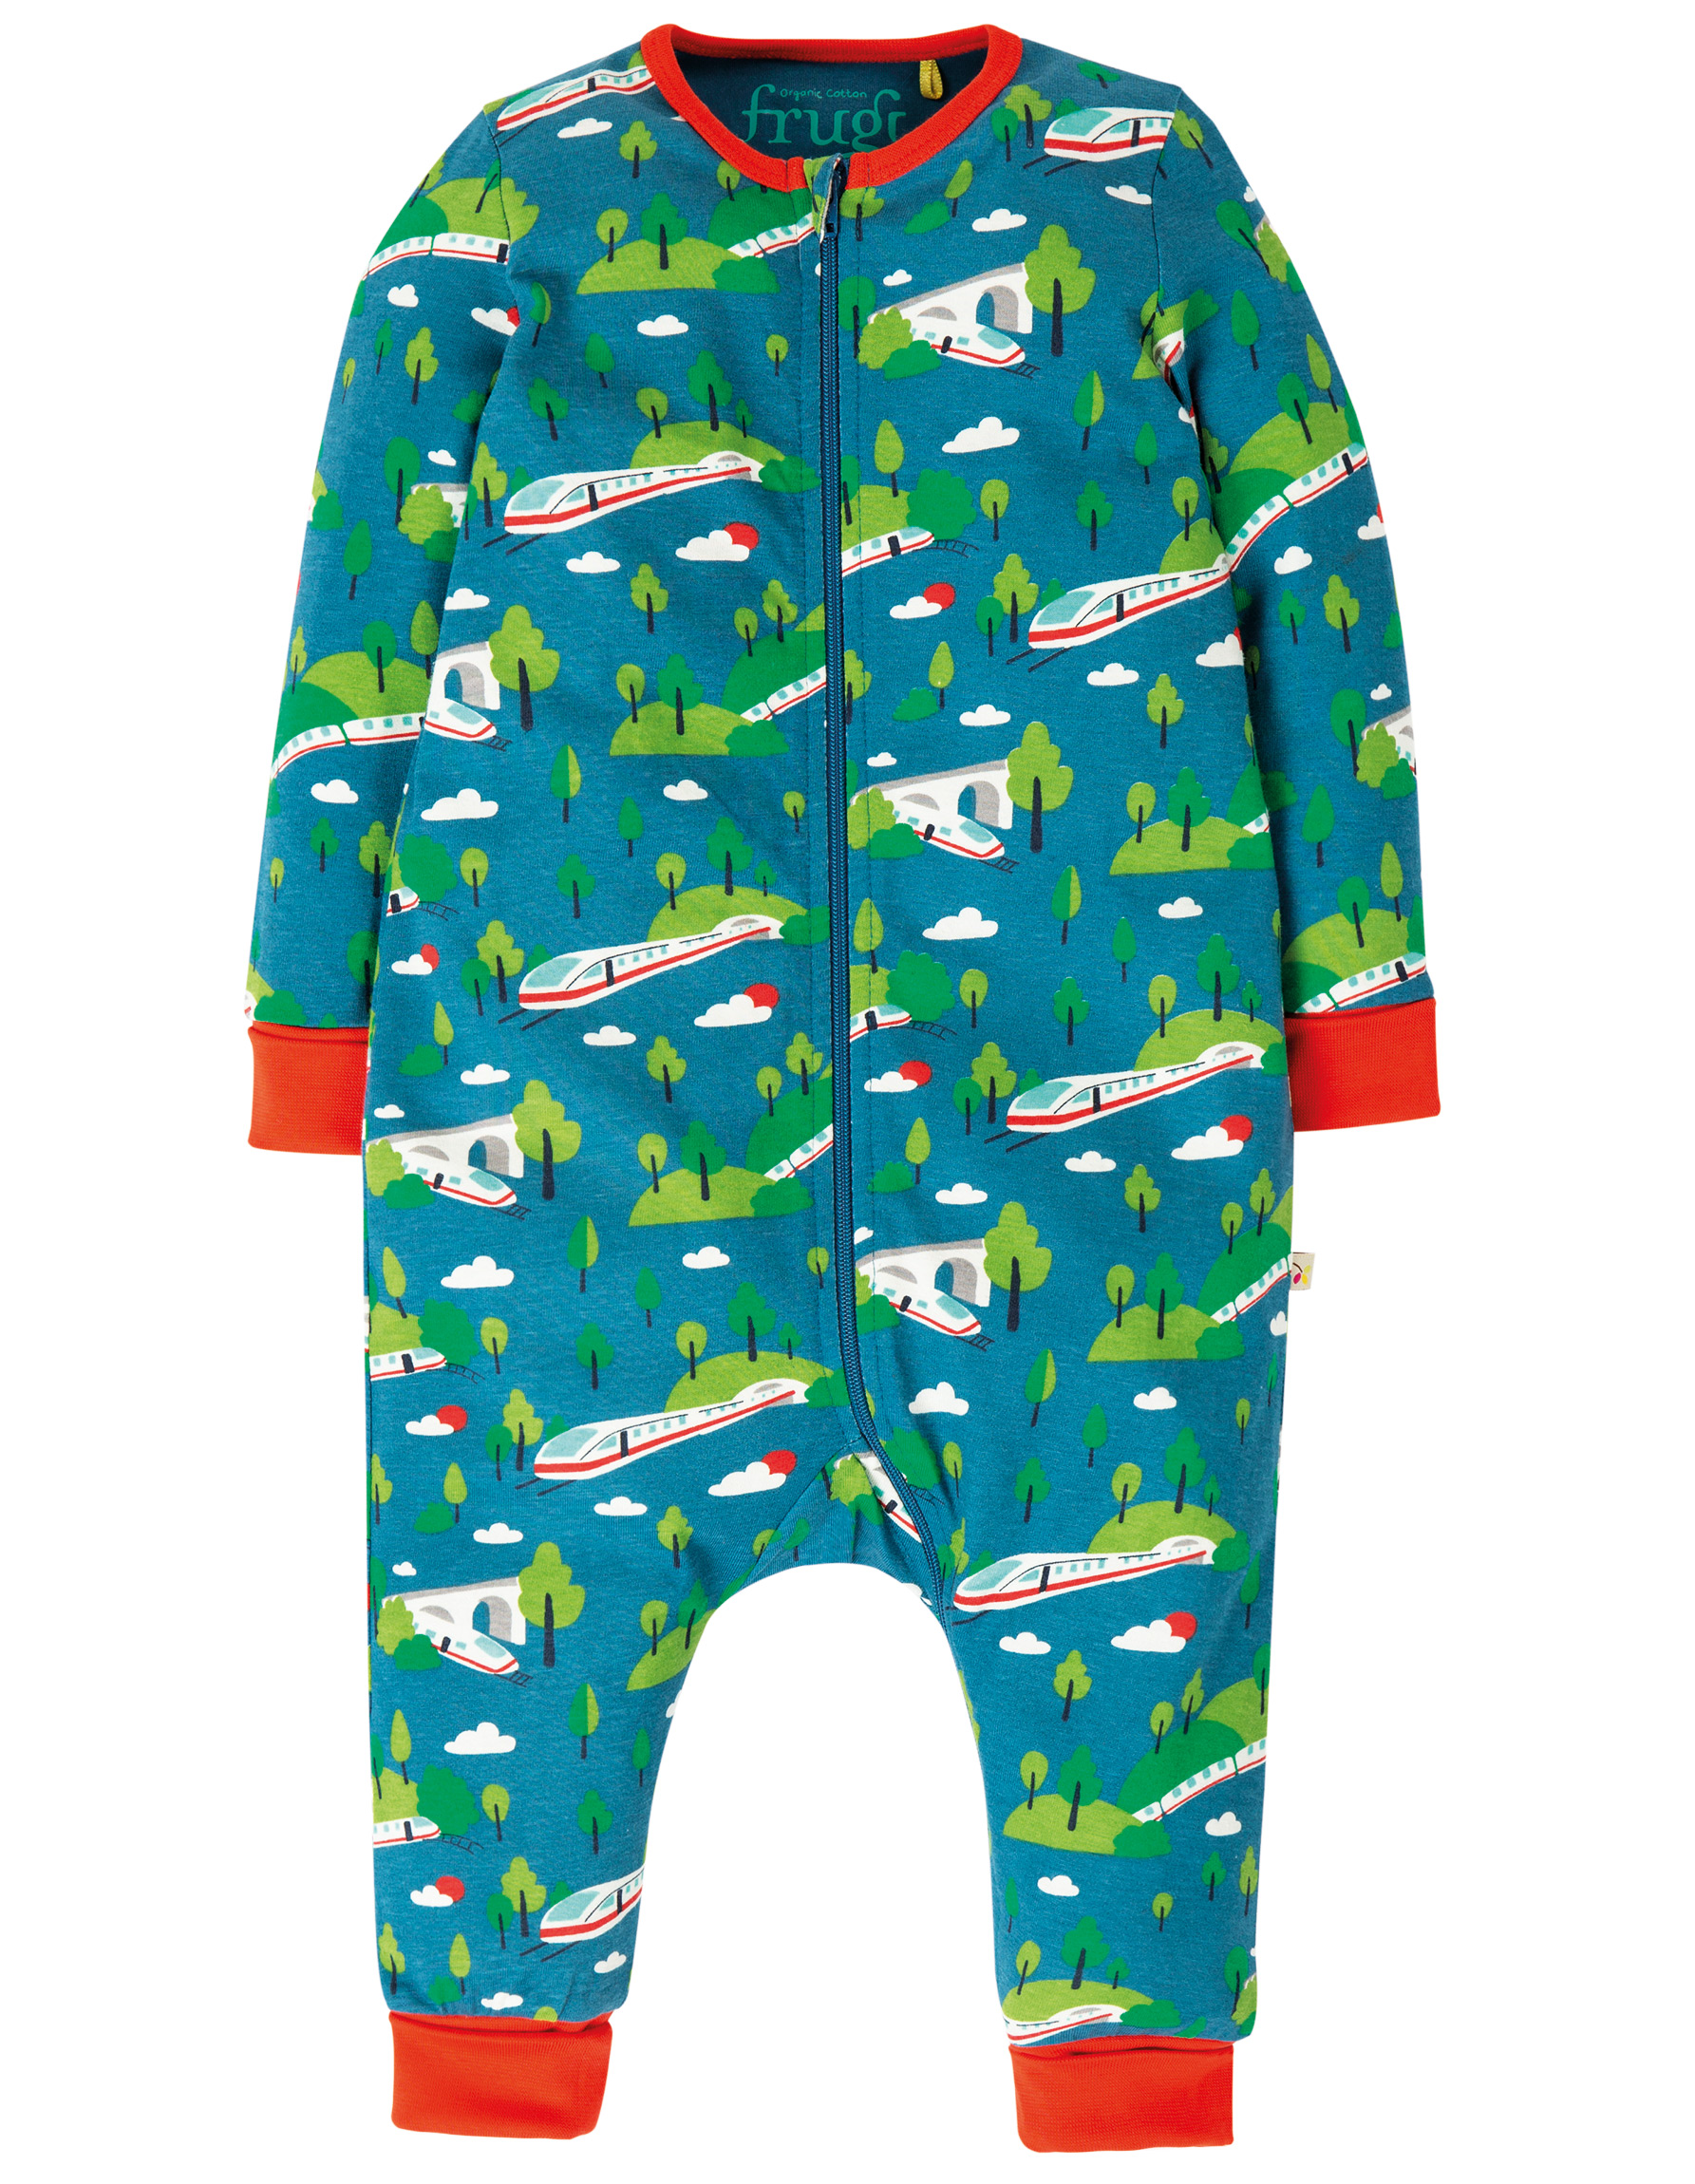 Frugi - Summer zip babygrow - Train